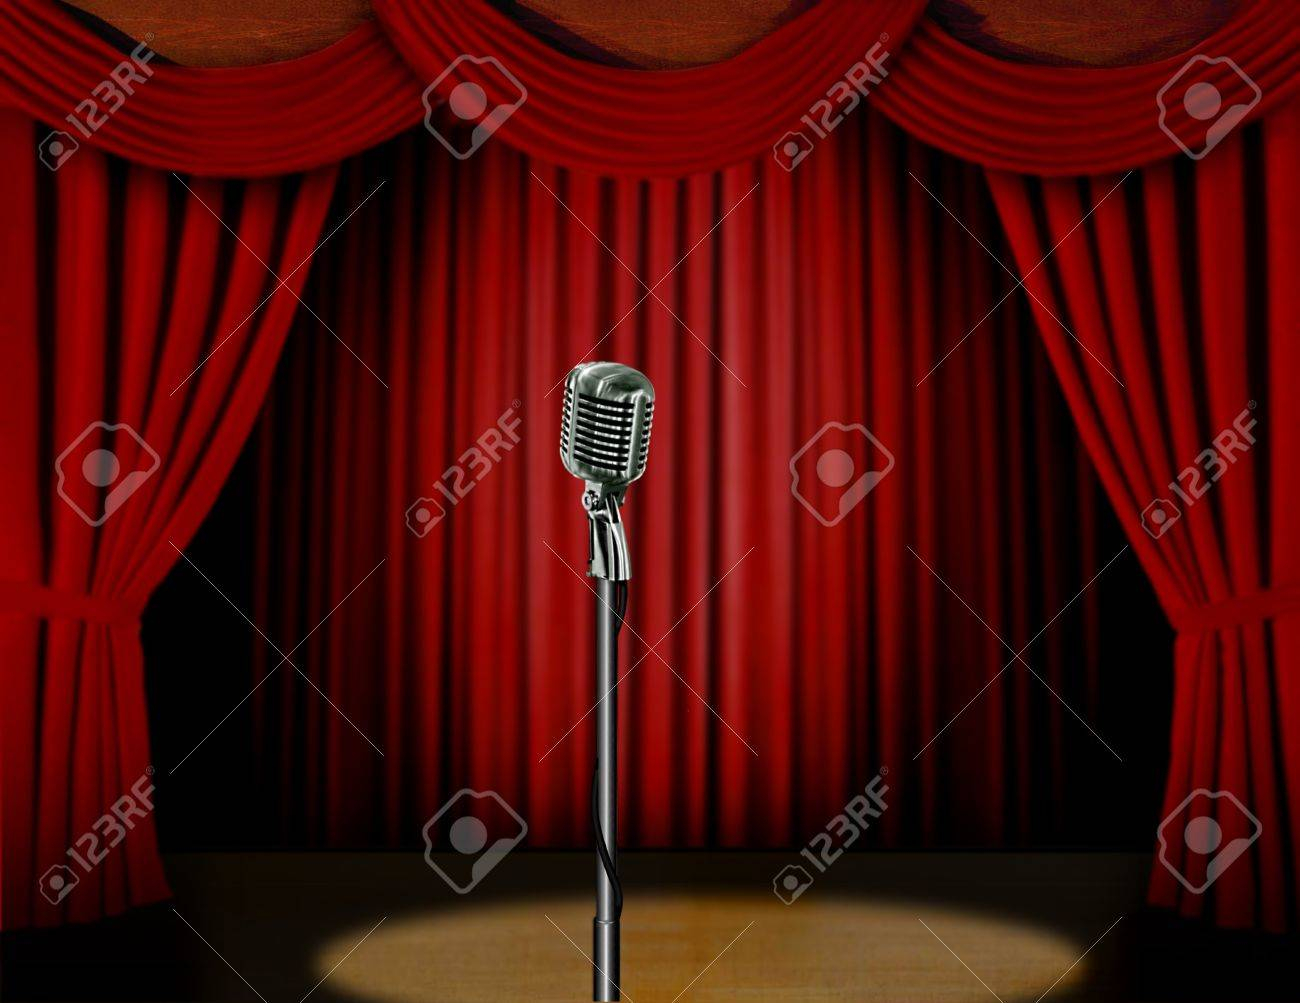 Stage curtains spotlight - Retro Microphone And Red Curtain On A Stage With Spotlight Stock Photo 20535111